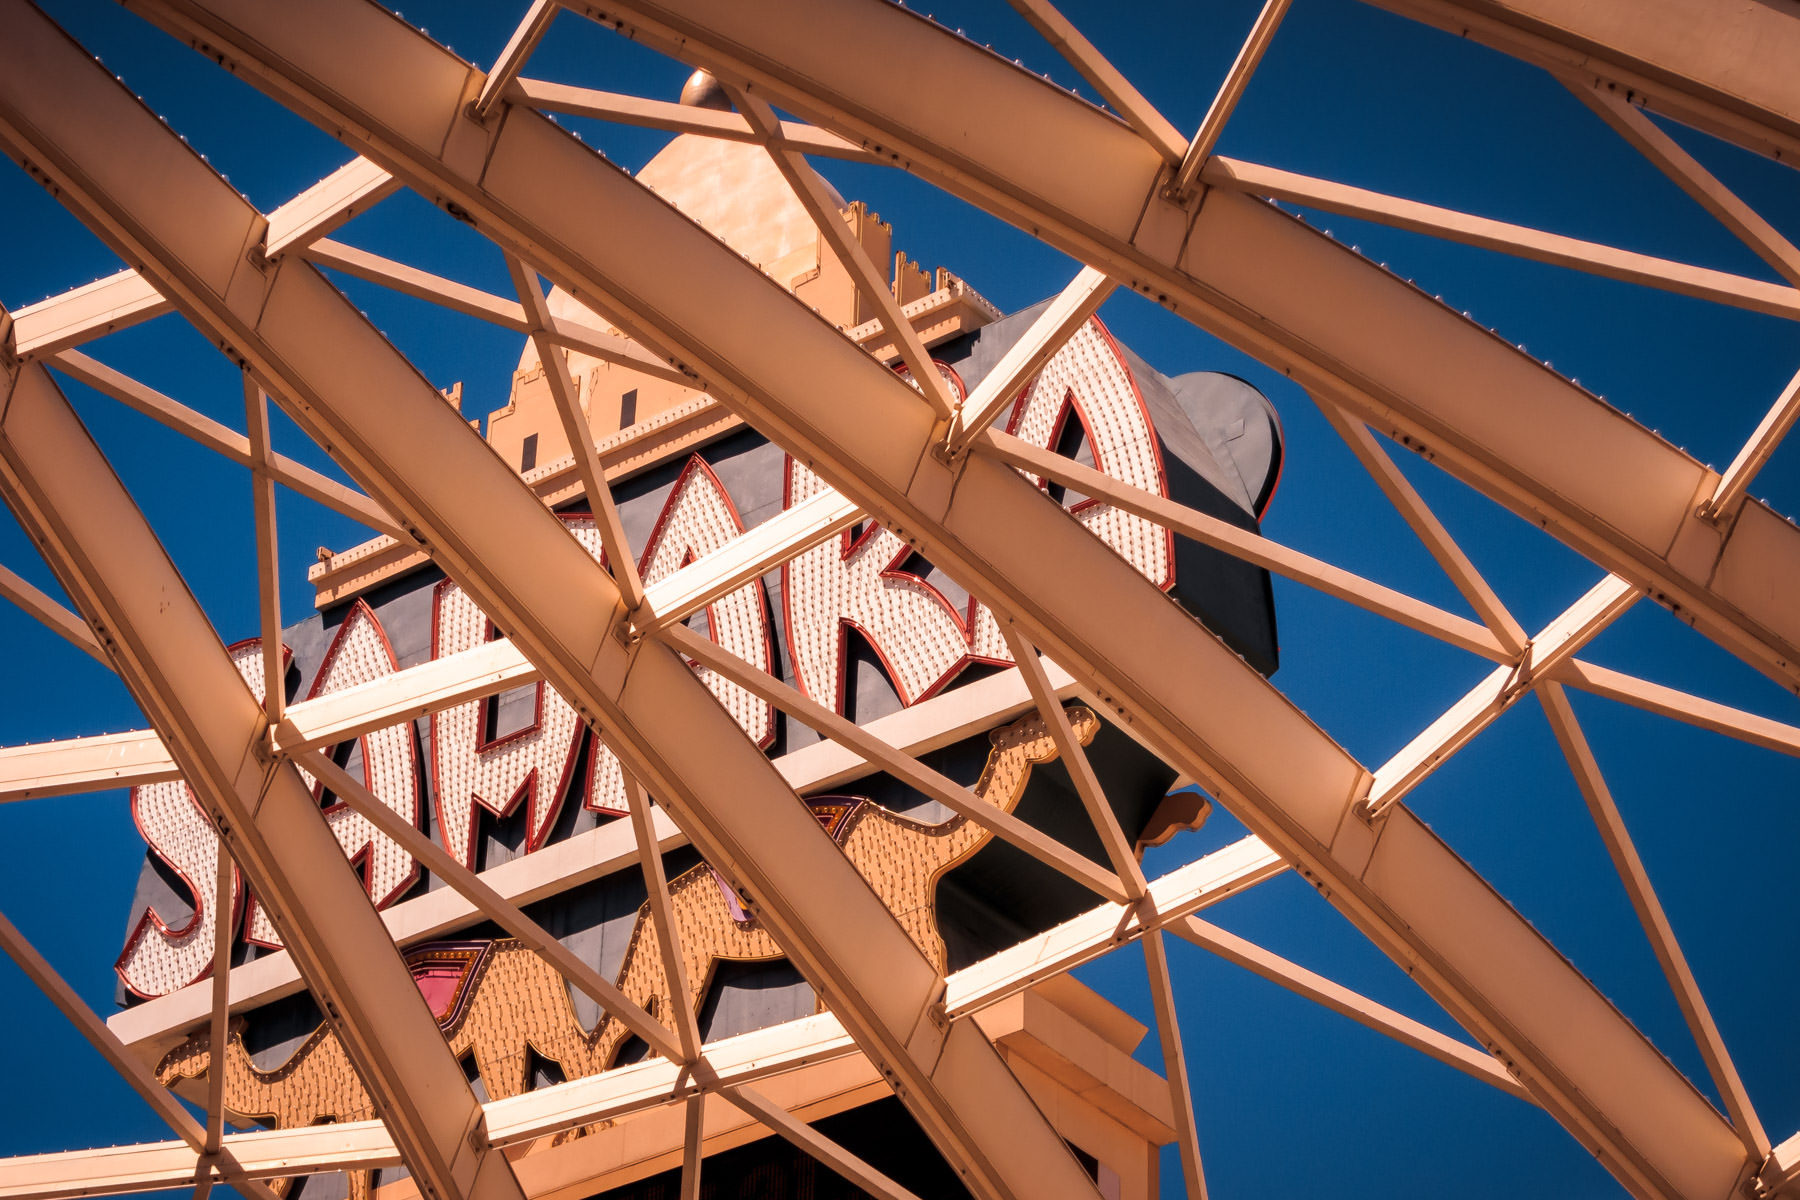 Las Vegas' Sahara Hotel and Casino's sign as seen through the steel structure atop the hotel's porte-cochére.